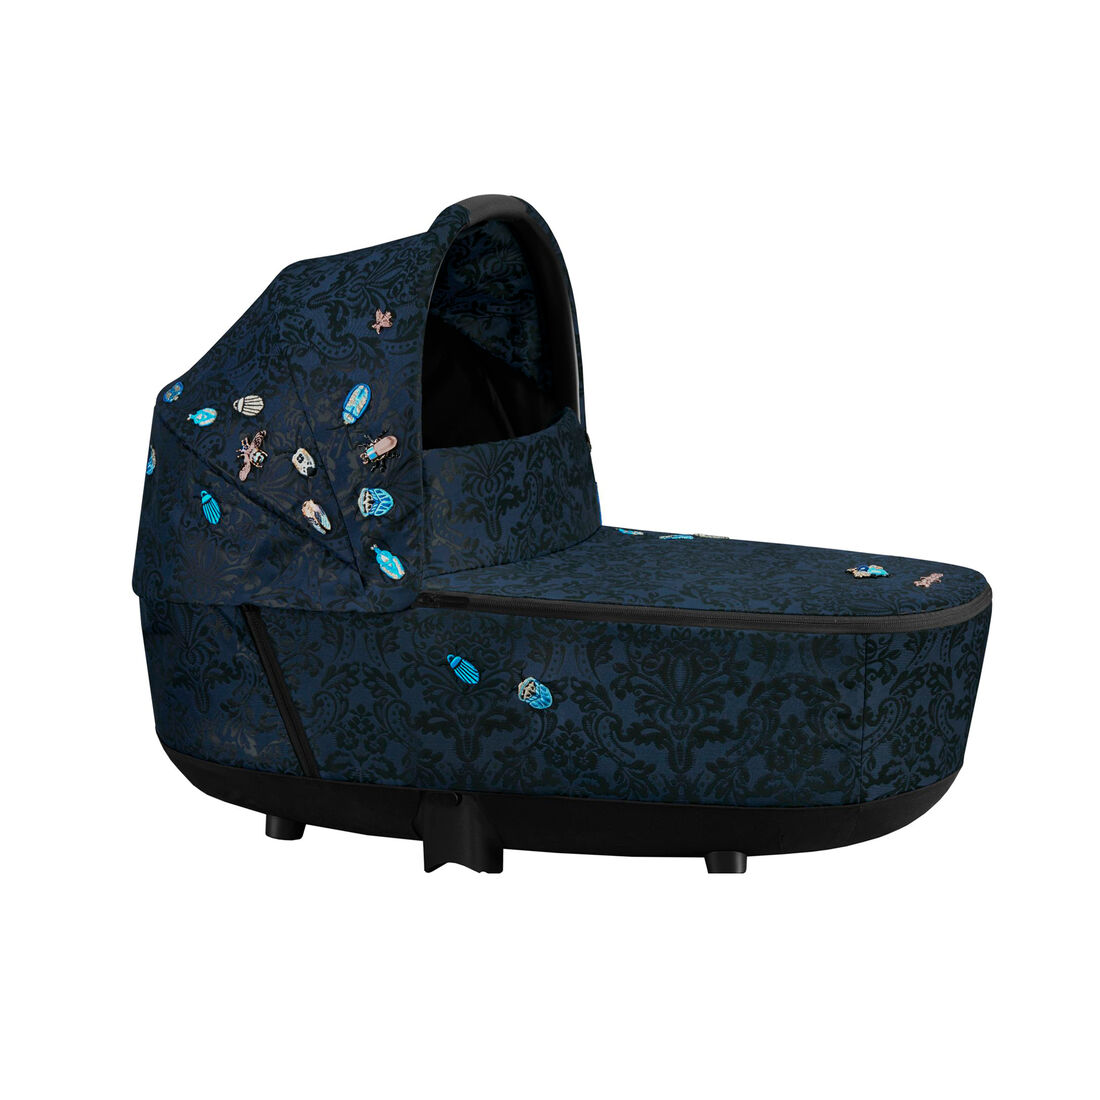 CYBEX Priam Lux Carry Cot - Jewels of Nature in Jewels of Nature large image number 1